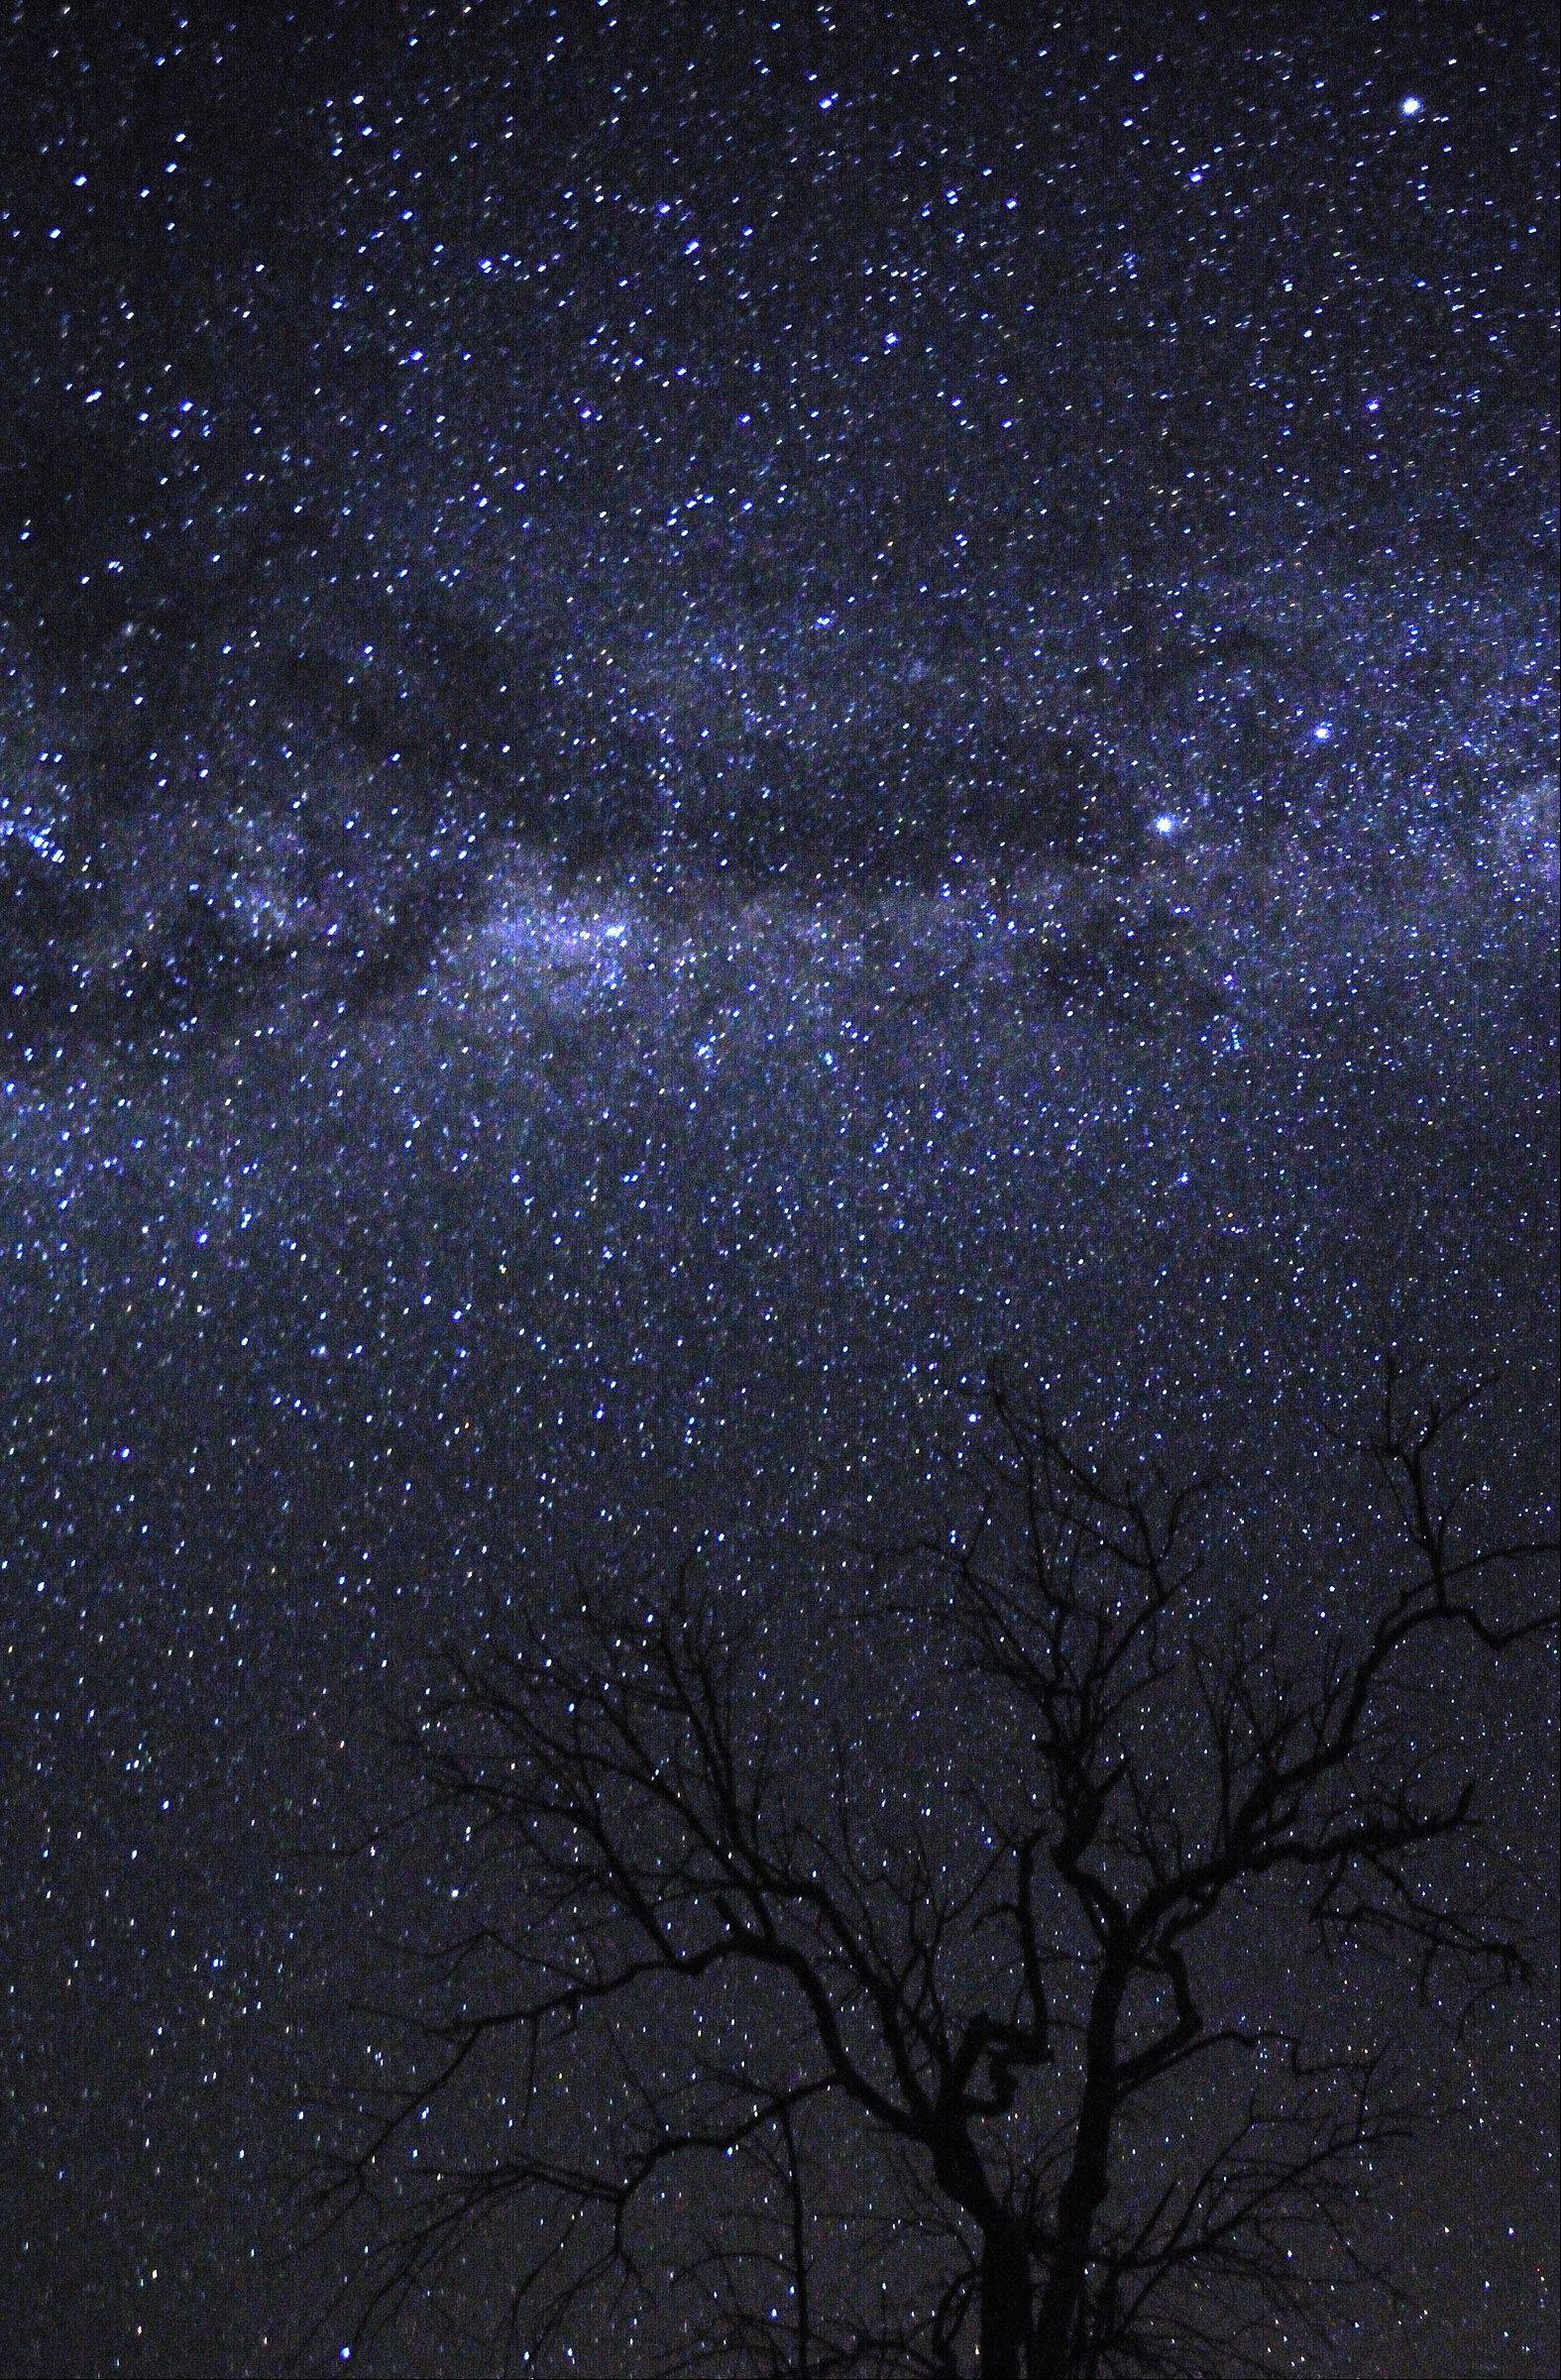 So many stars on a moonless night in a remote area of Botswana, Africa this past summer. Captured with a camera on a tripod and a 43-second exposure of the starry night sky.